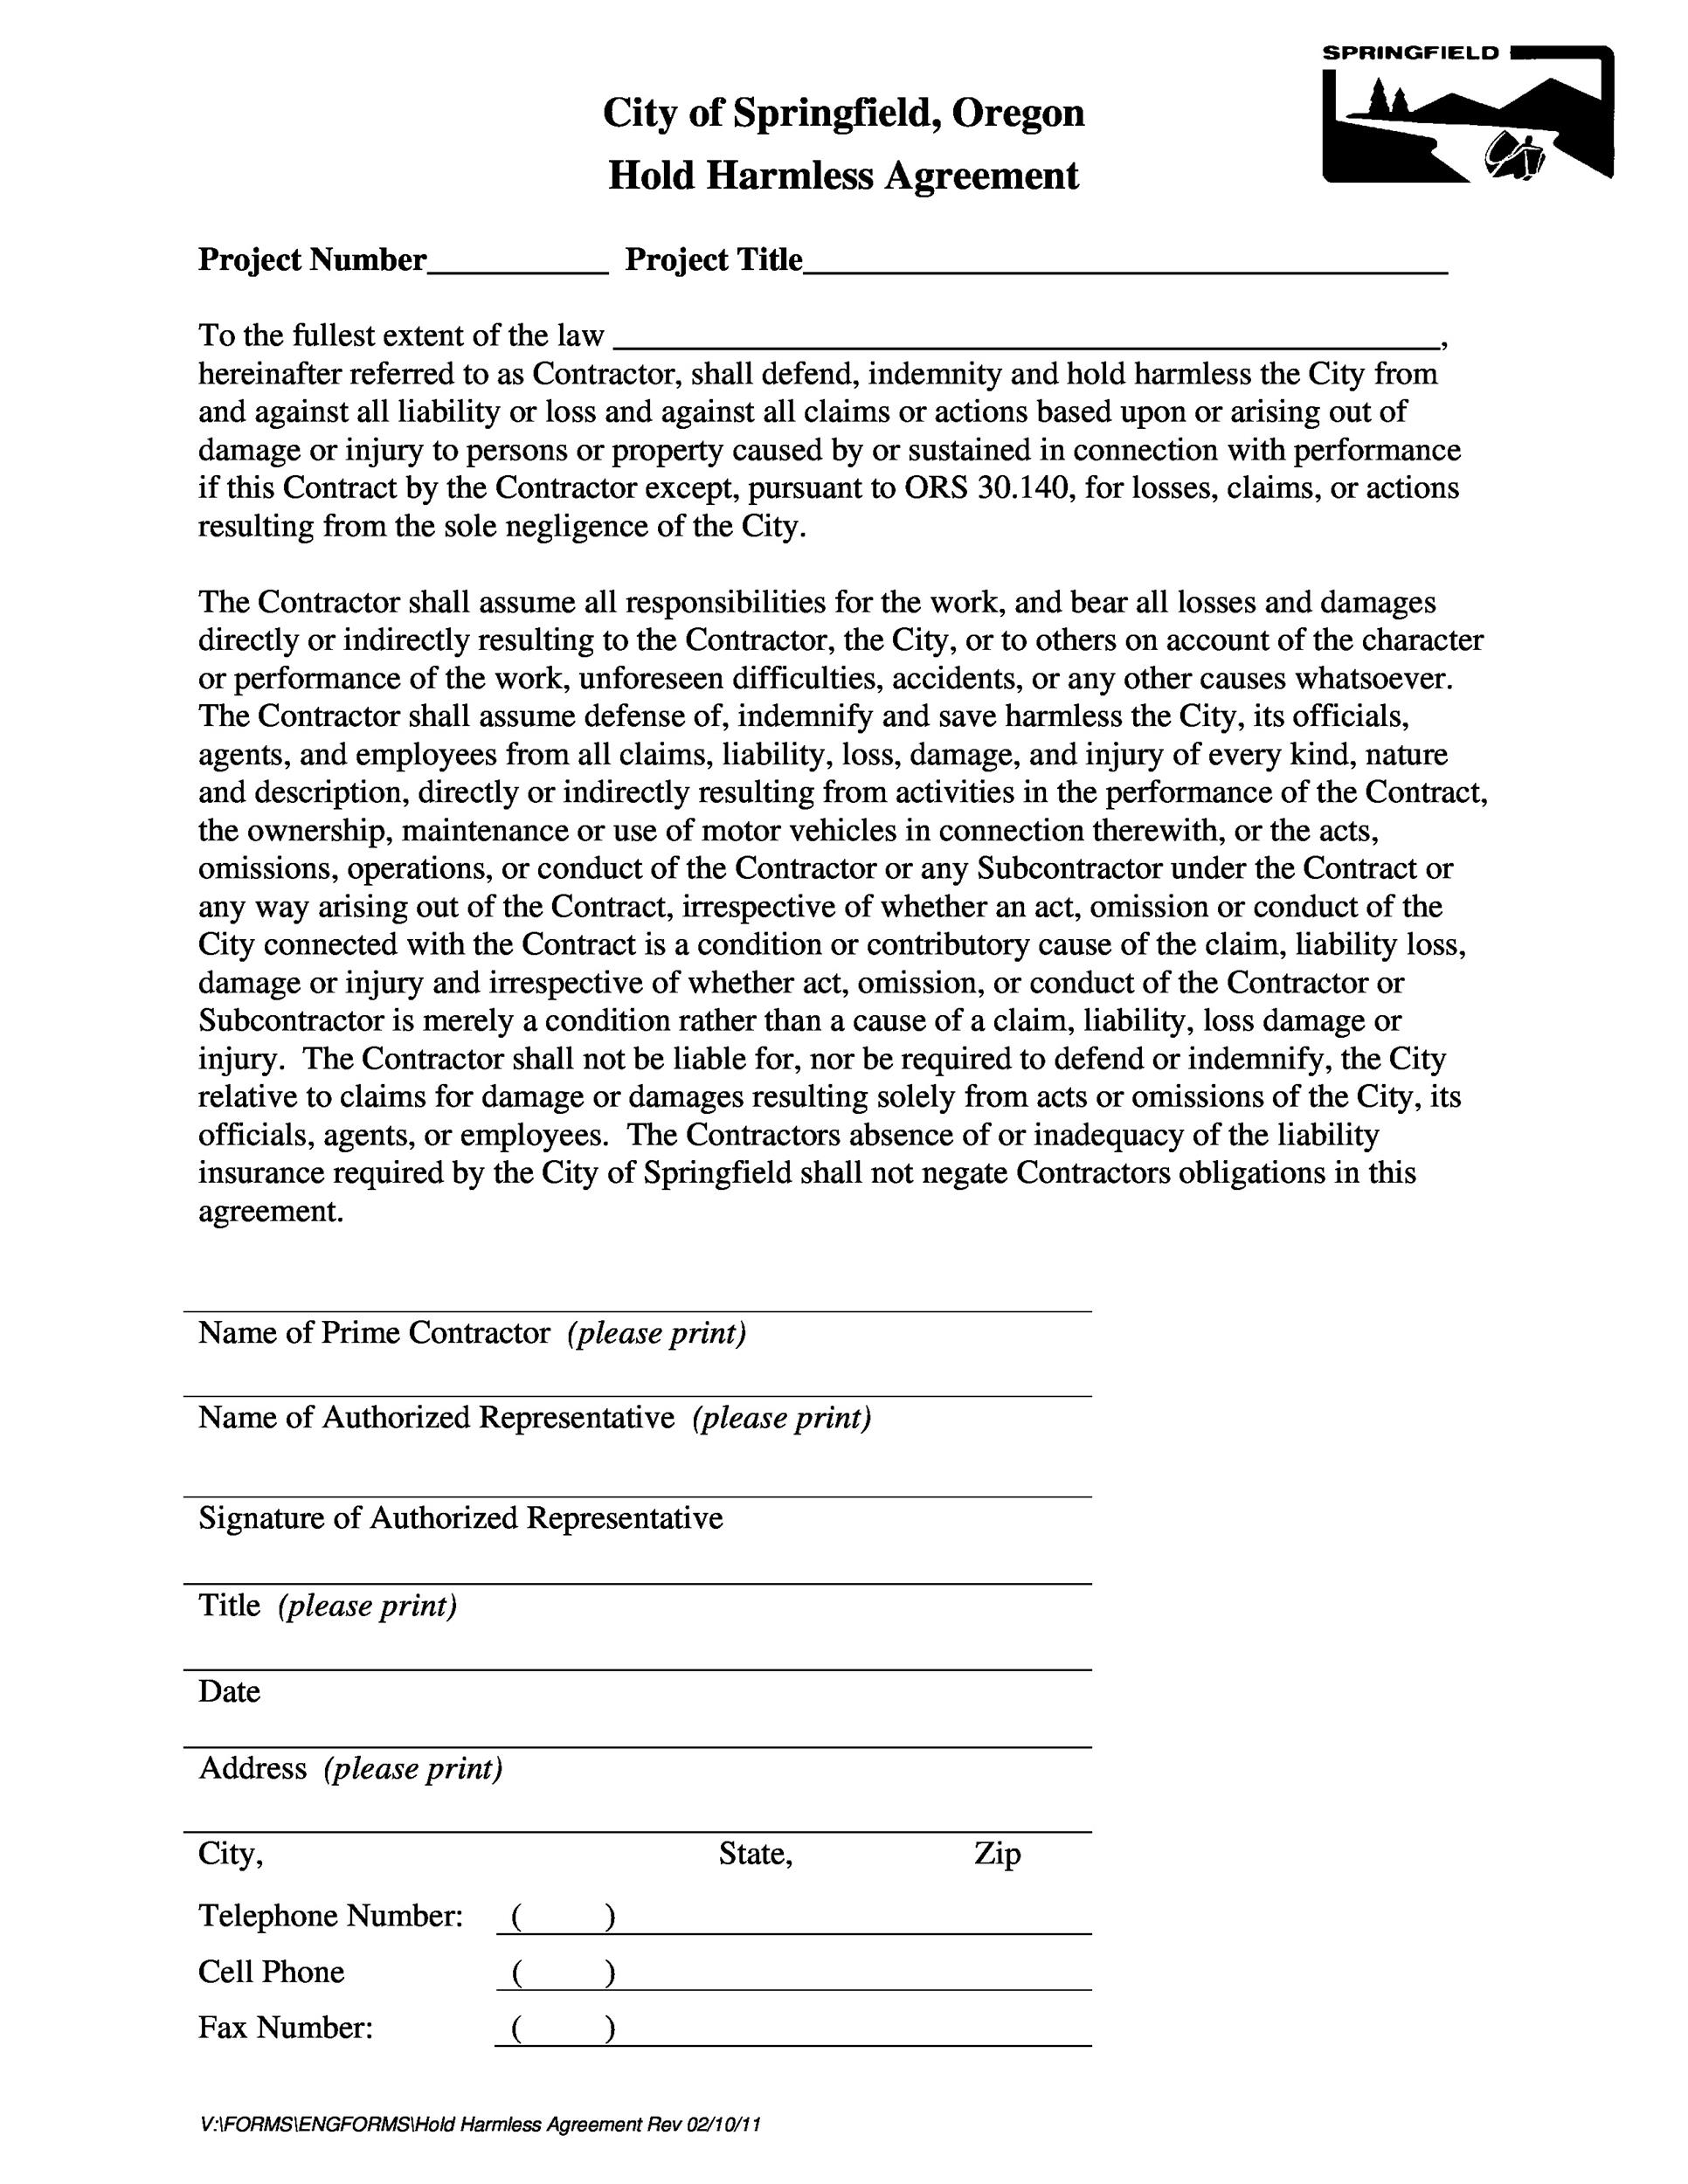 Free Hold Harmless Agreement Template 15